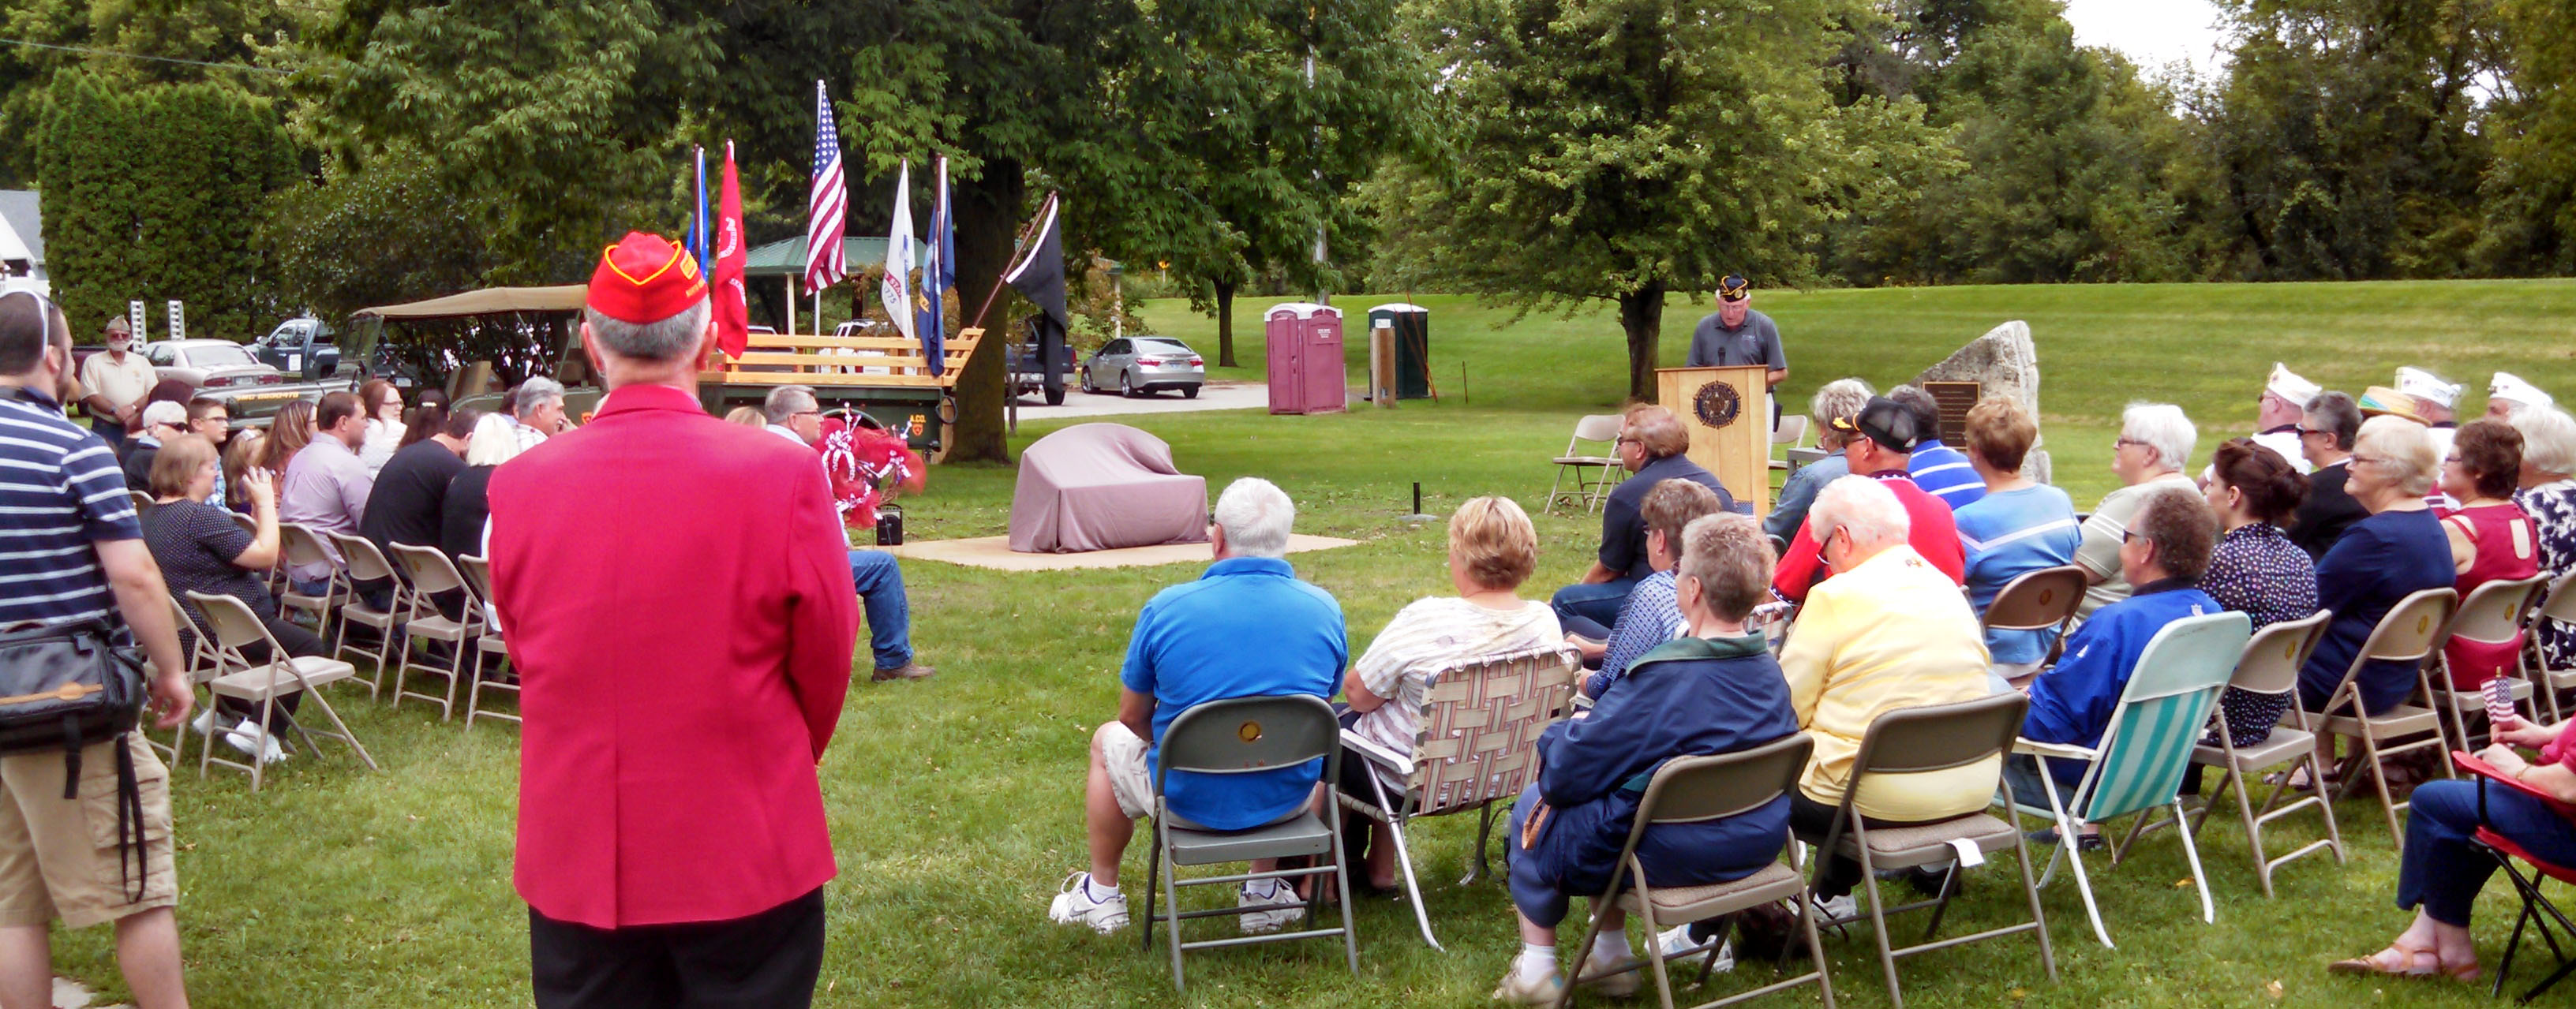 8 29 15 Lee Memorial Dedication 3